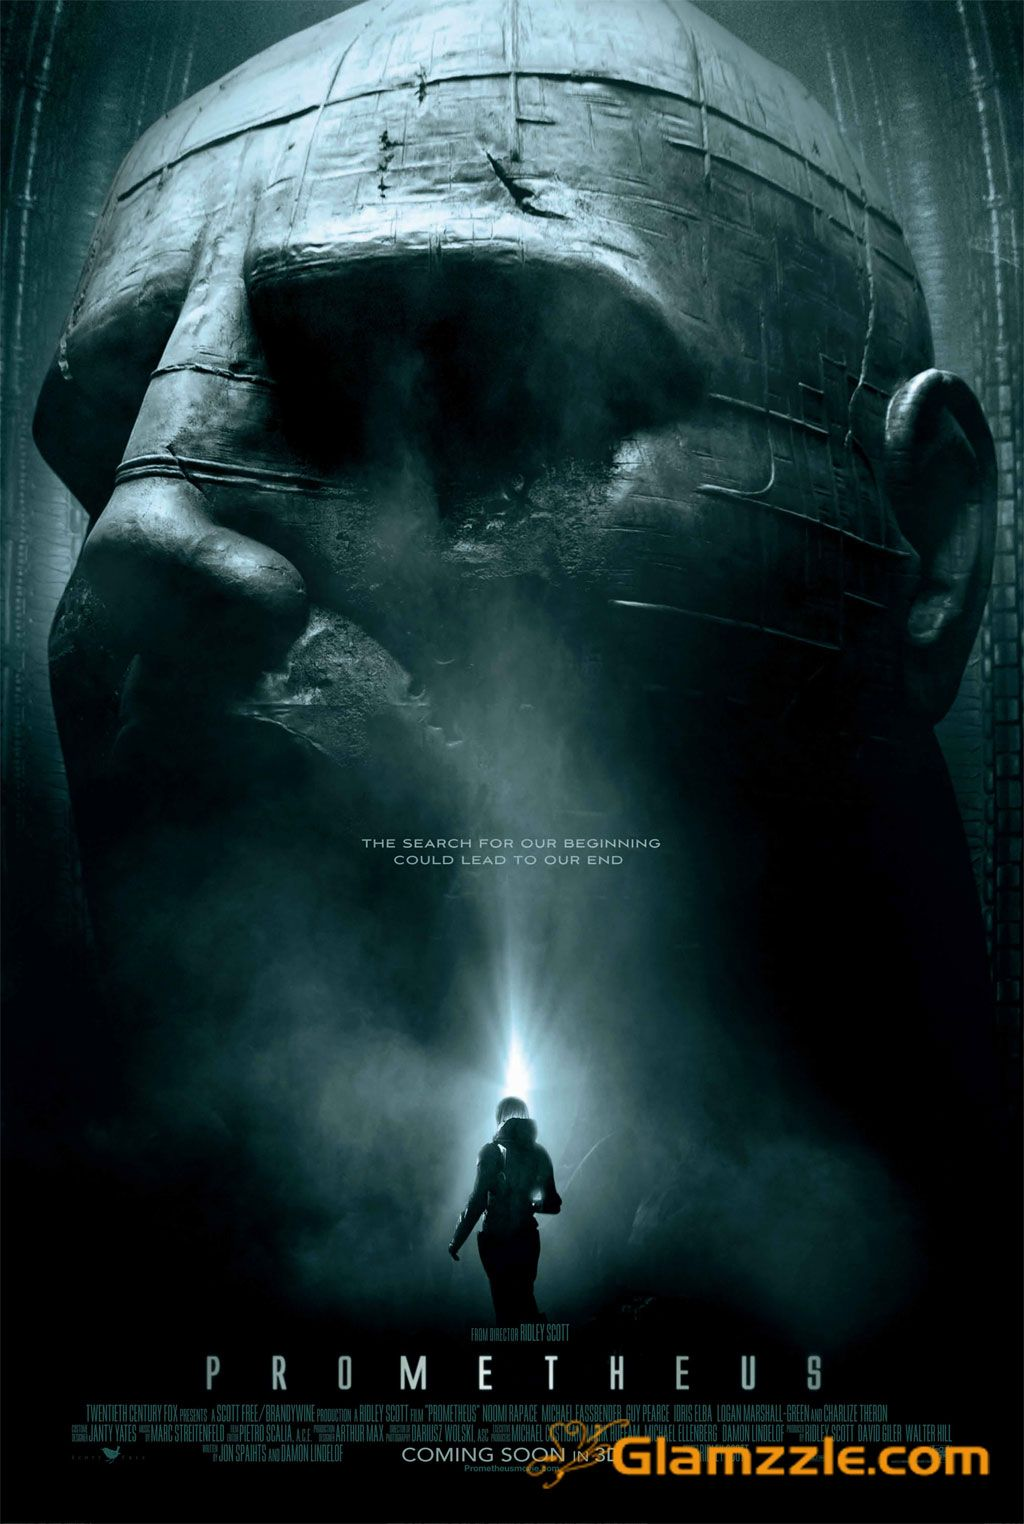 movies 2012 | Top & Best Movie At Box Office For The Week : Prometheus 2012 Image